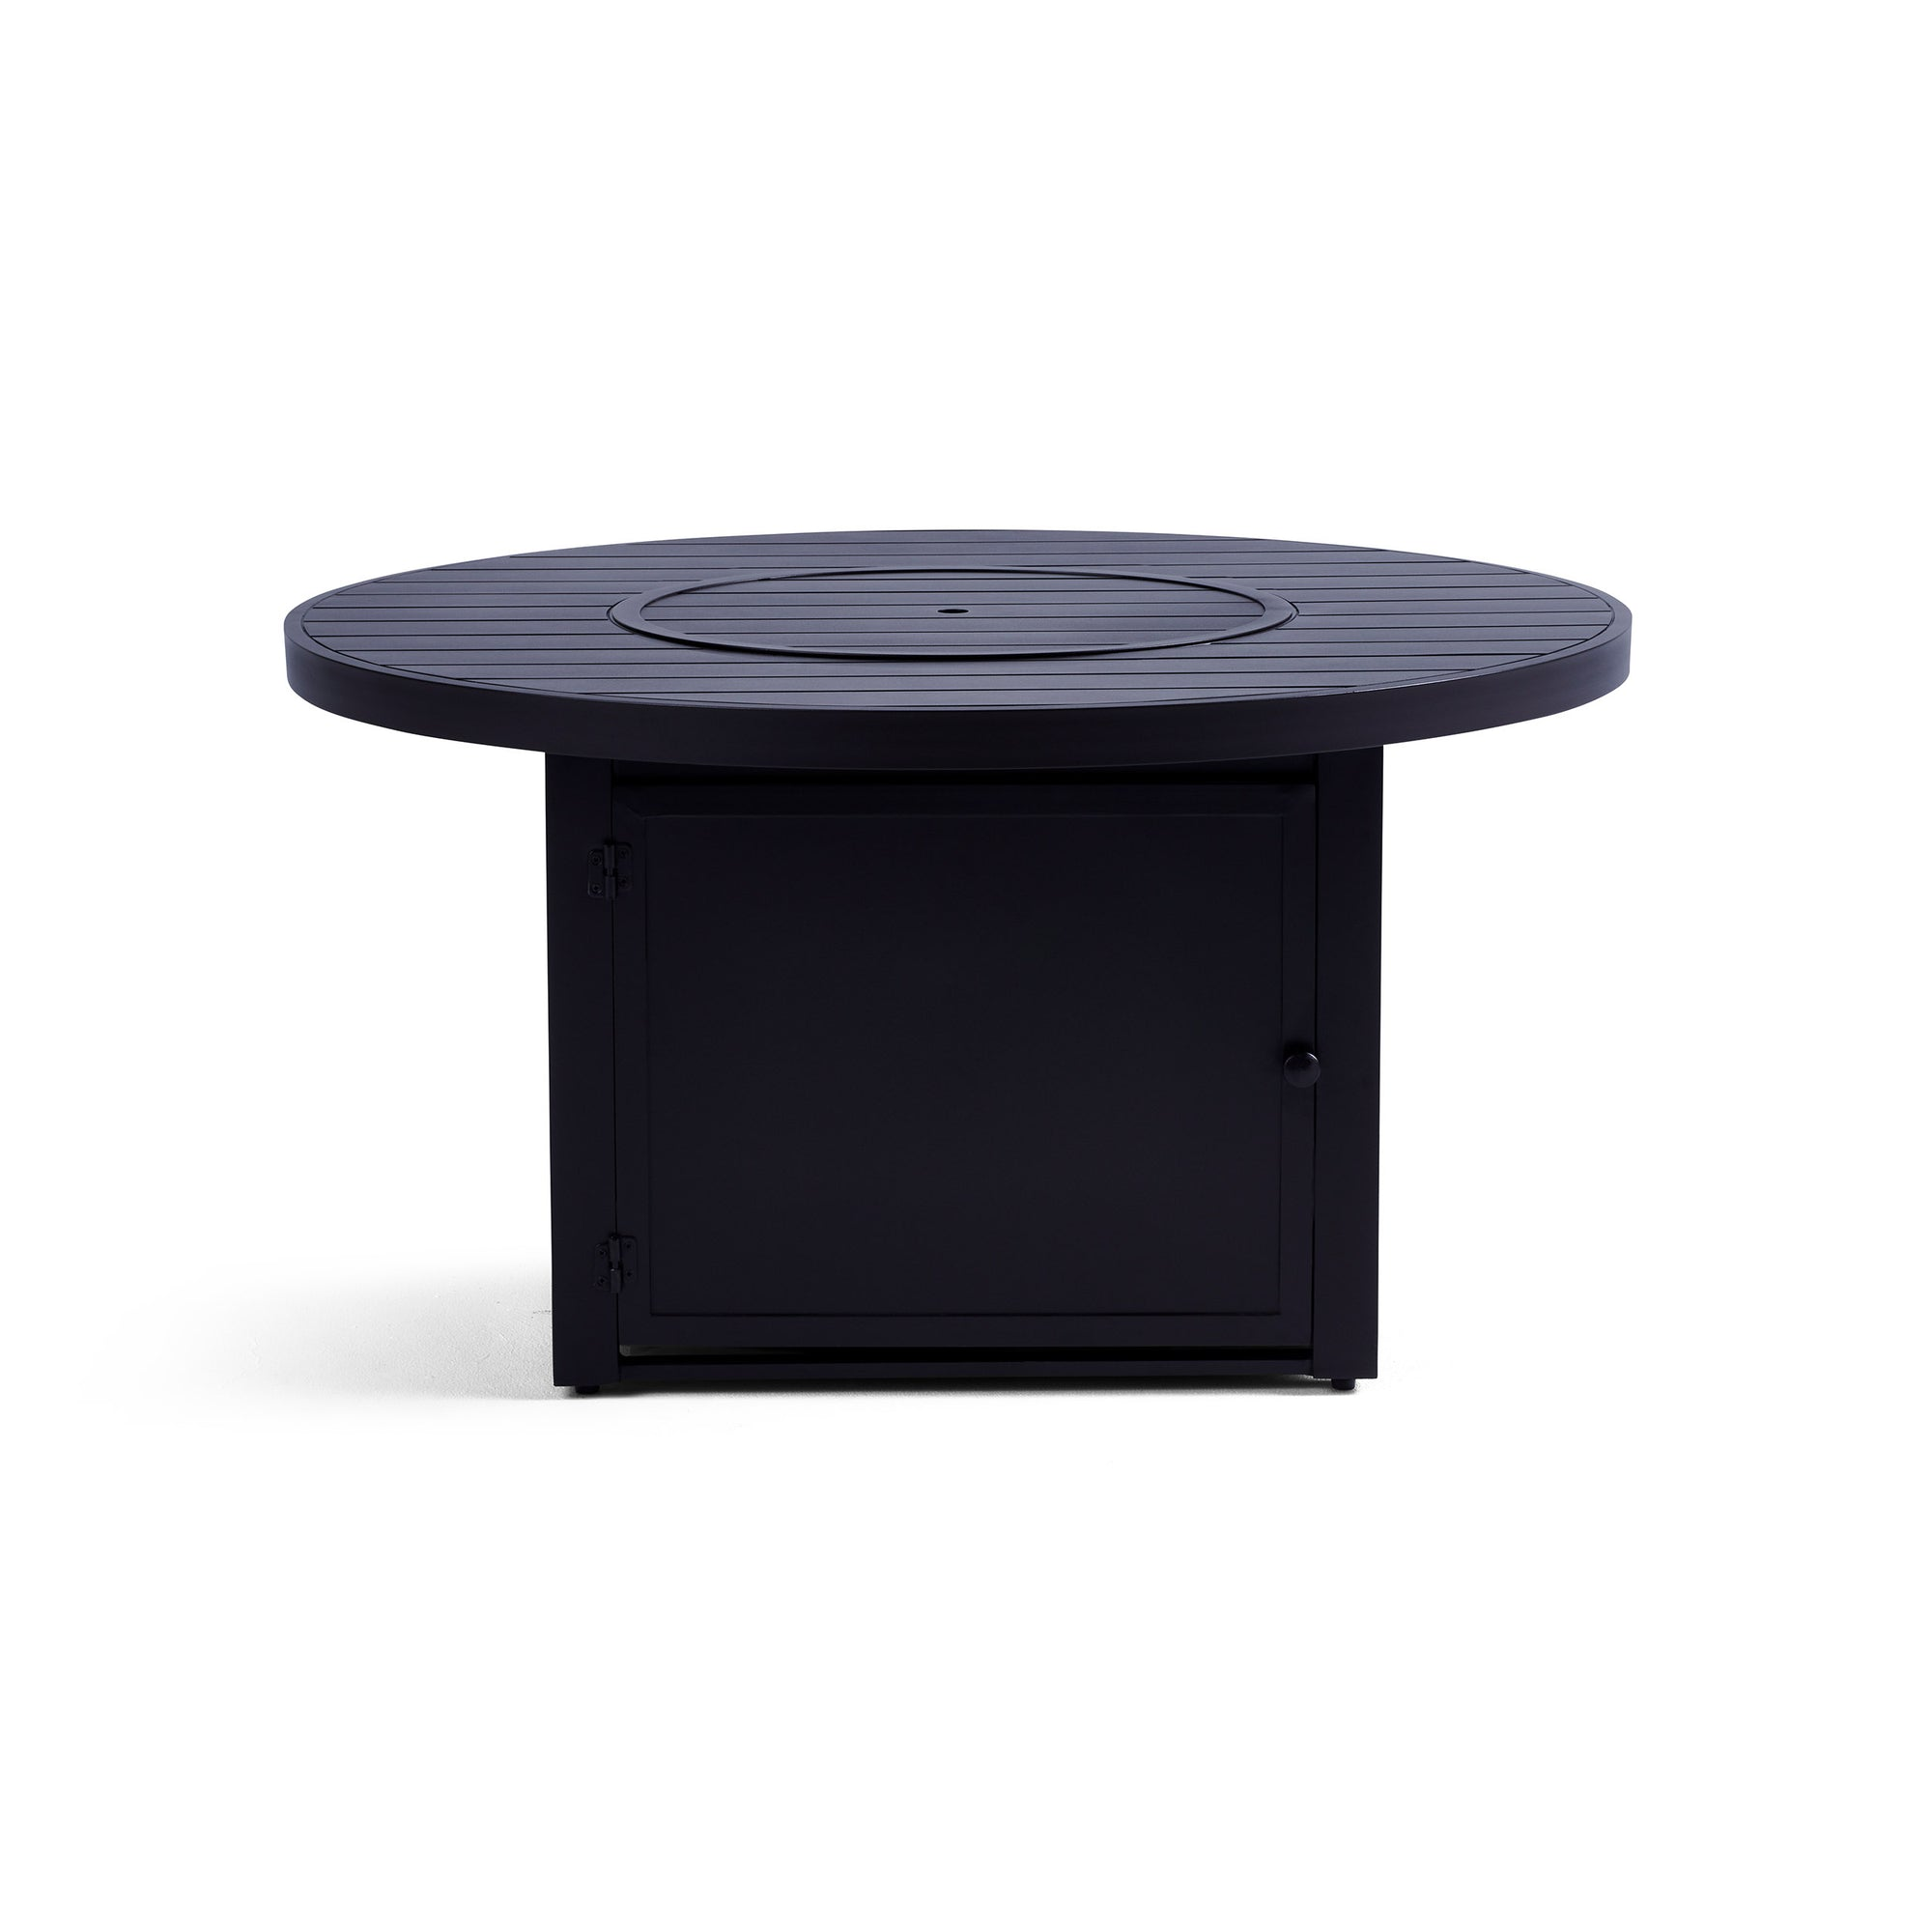 Yardbird Round Fire Pit Table Outdoor Furniture